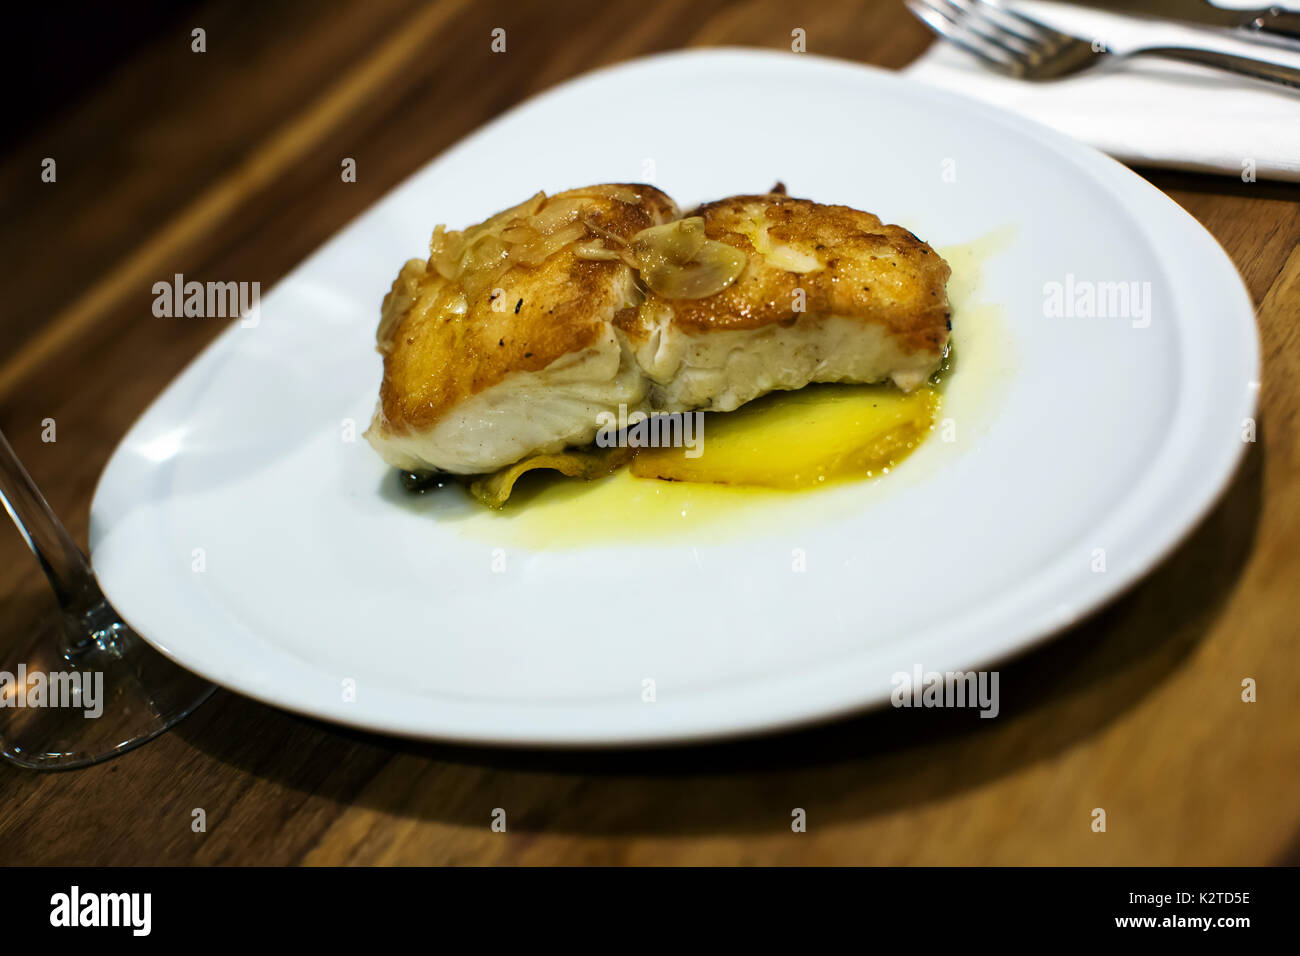 Whiting cooked stock photos whiting cooked stock images for How to cook whiting fish